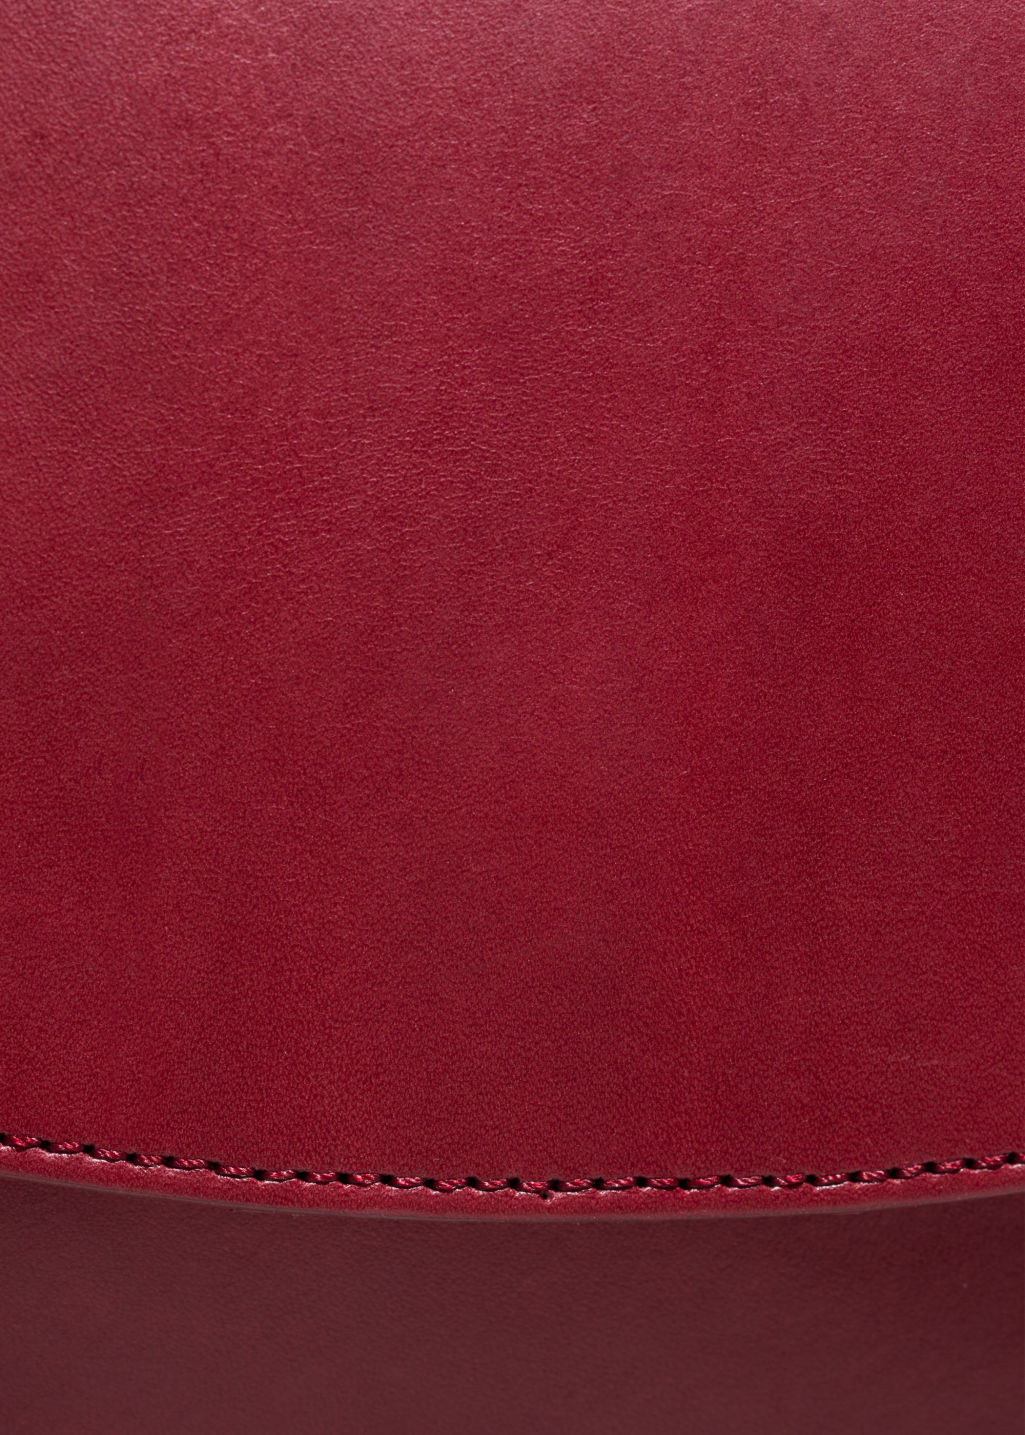 Detailed image of Stories saddle stitch leather shoulder bag in red